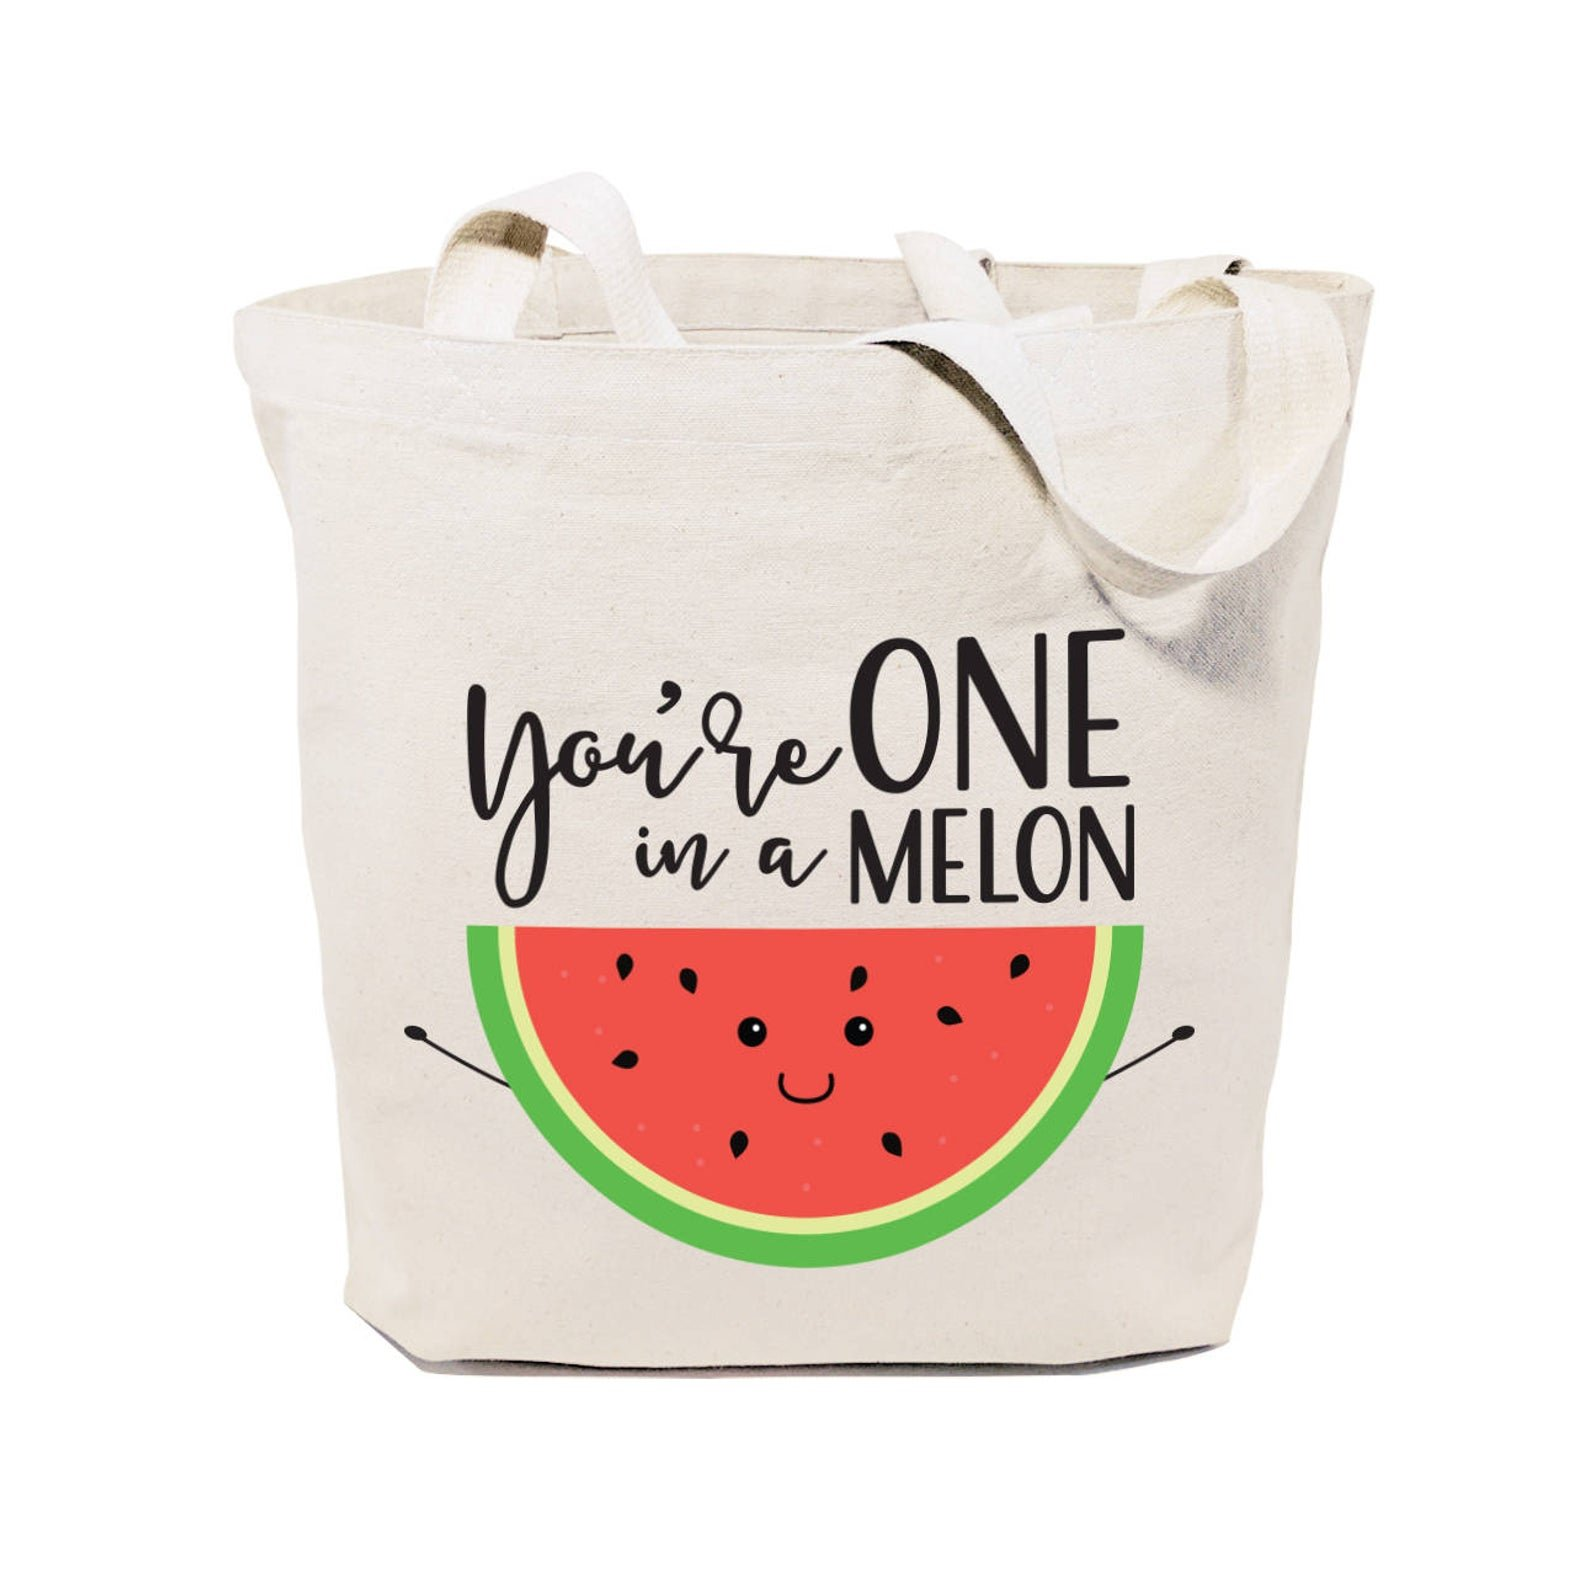 tote bag that says you're one in a melon with watermelon on it